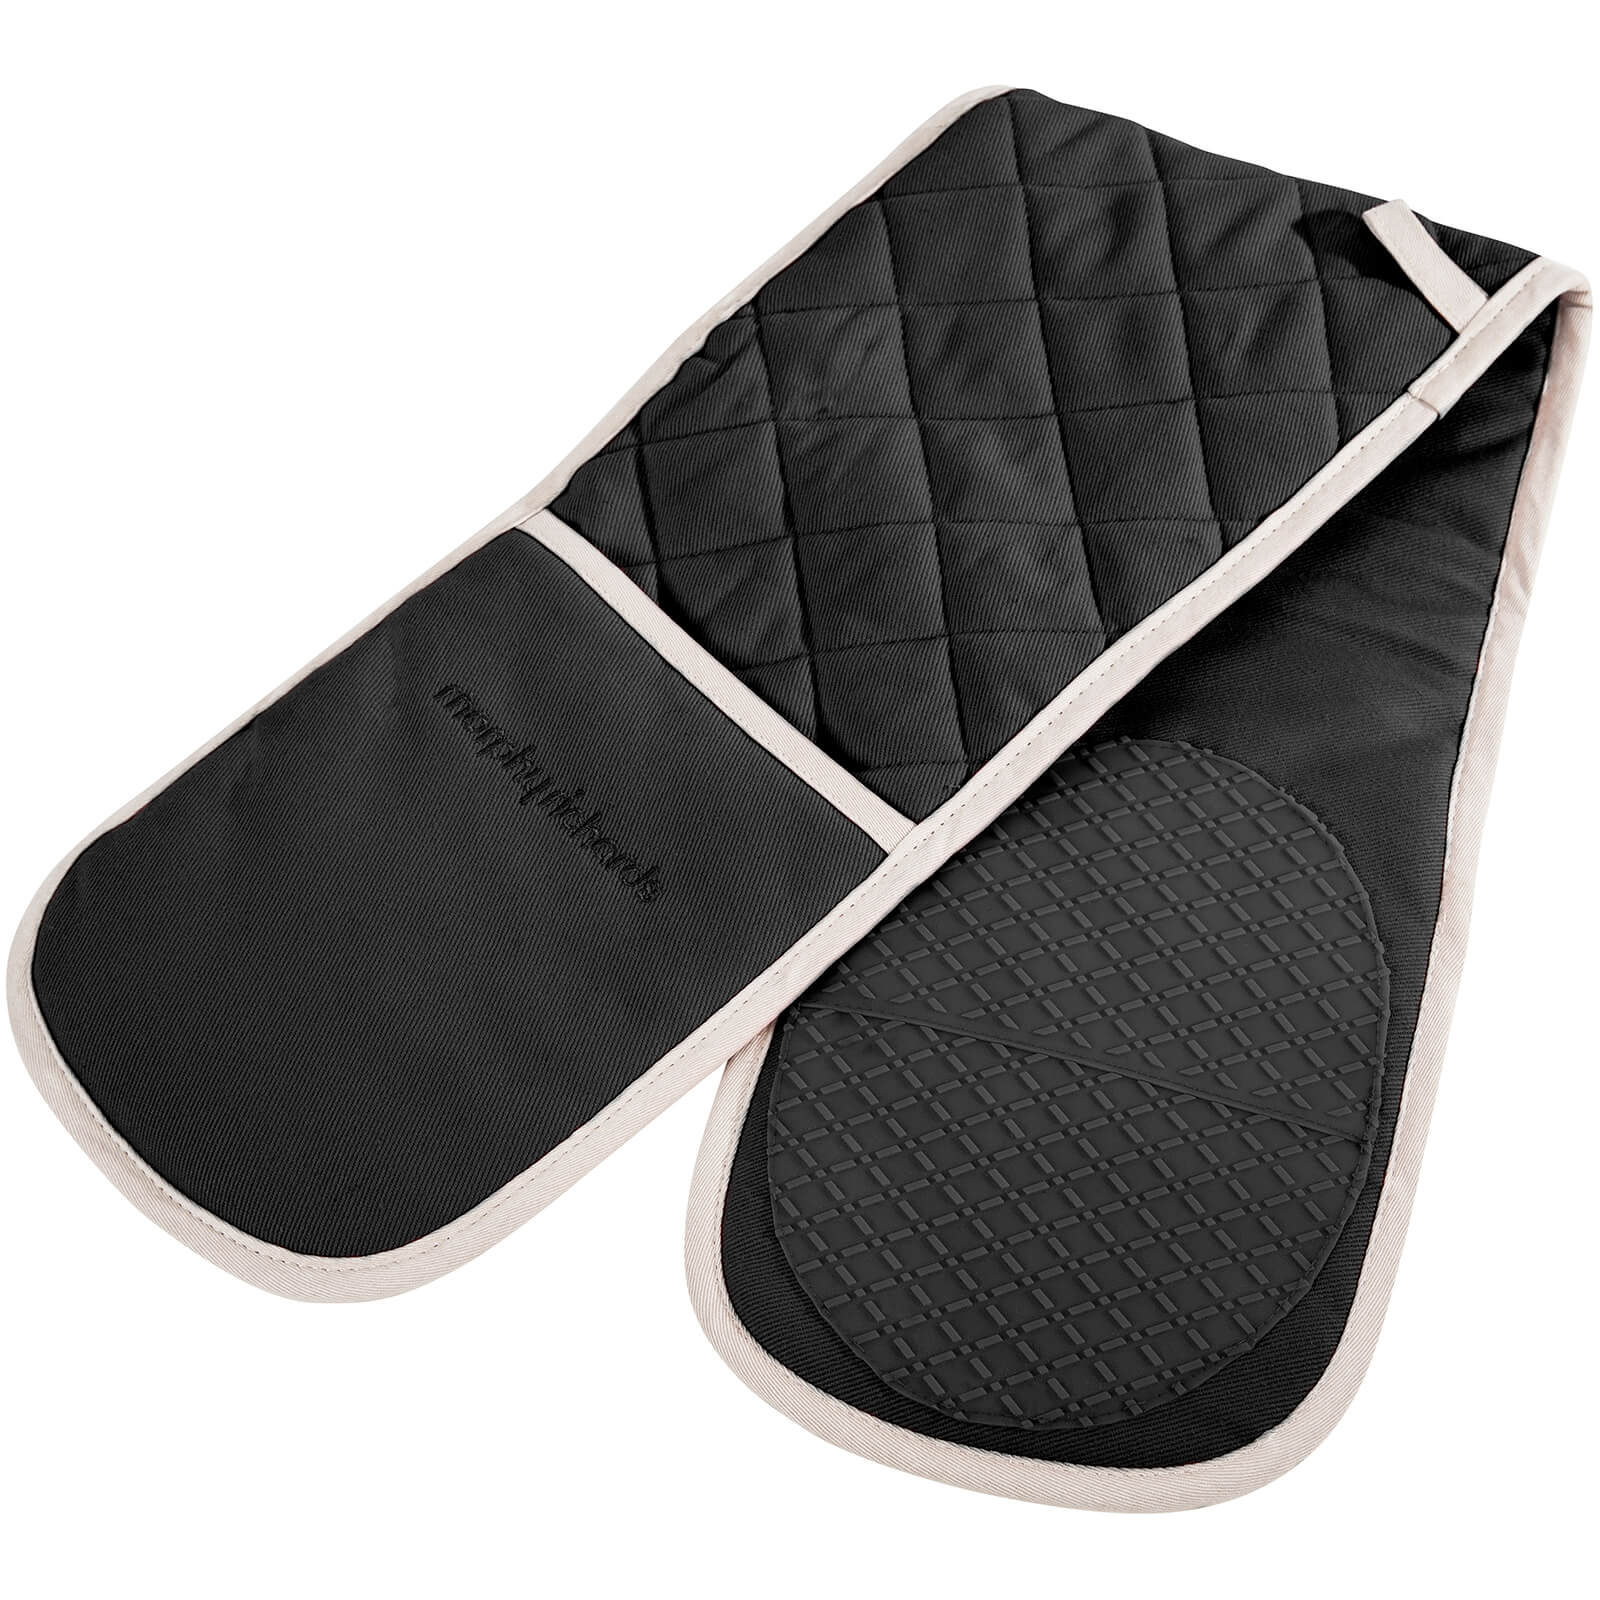 Morphy Richards 973512 Double Oven Glove - Black - 18x88cm